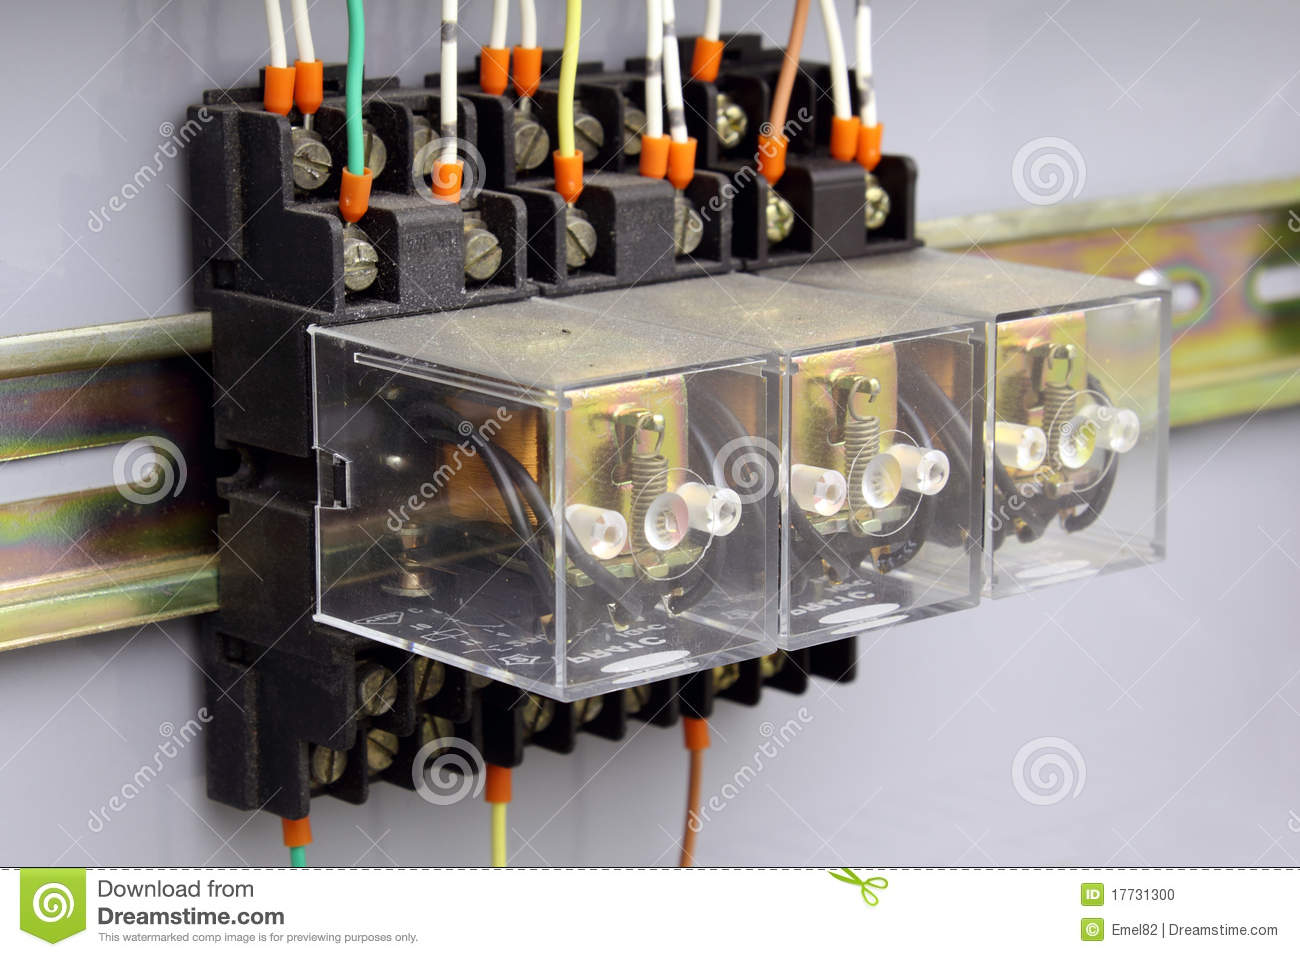 Electrical relays stock photo Image of electricity connection